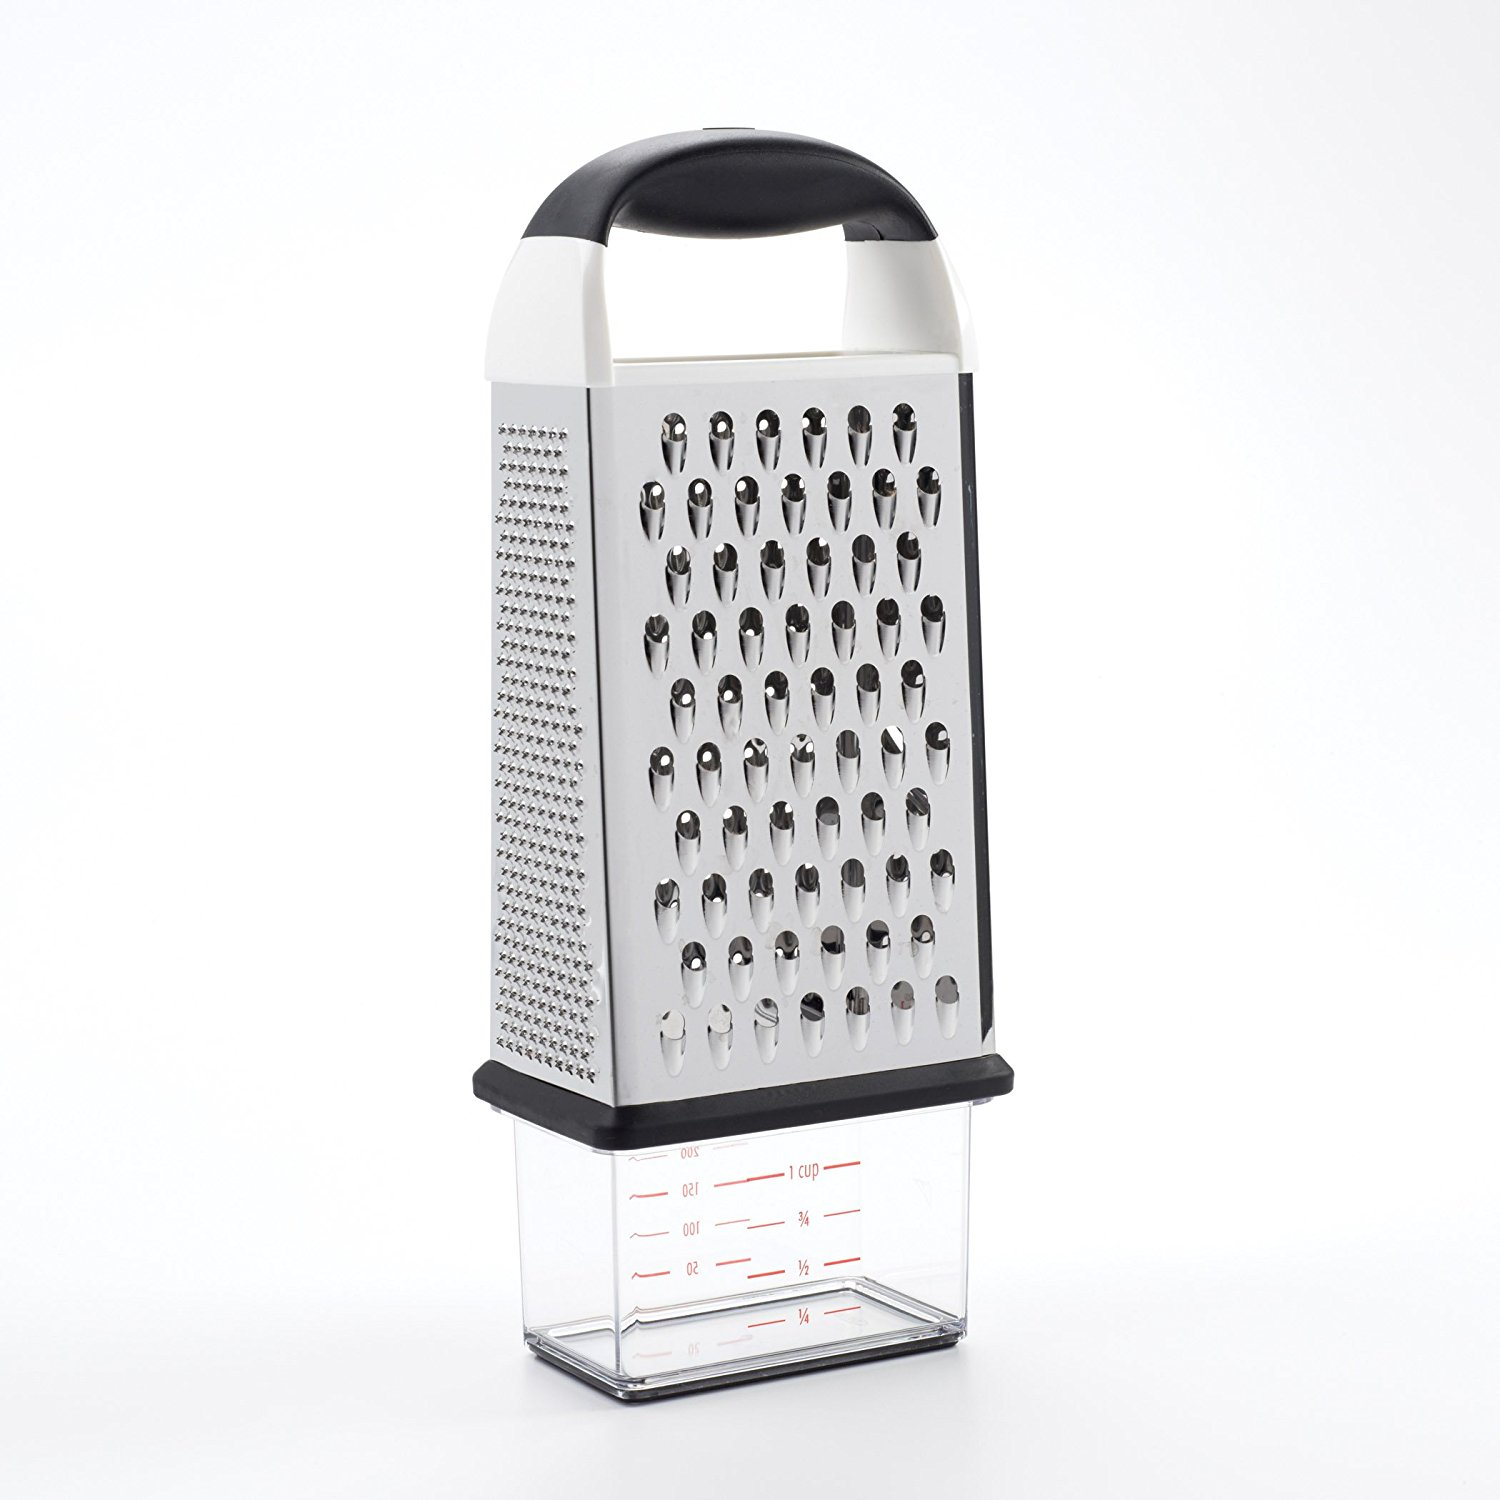 OXO 4-Sided Good Grips Box Grater